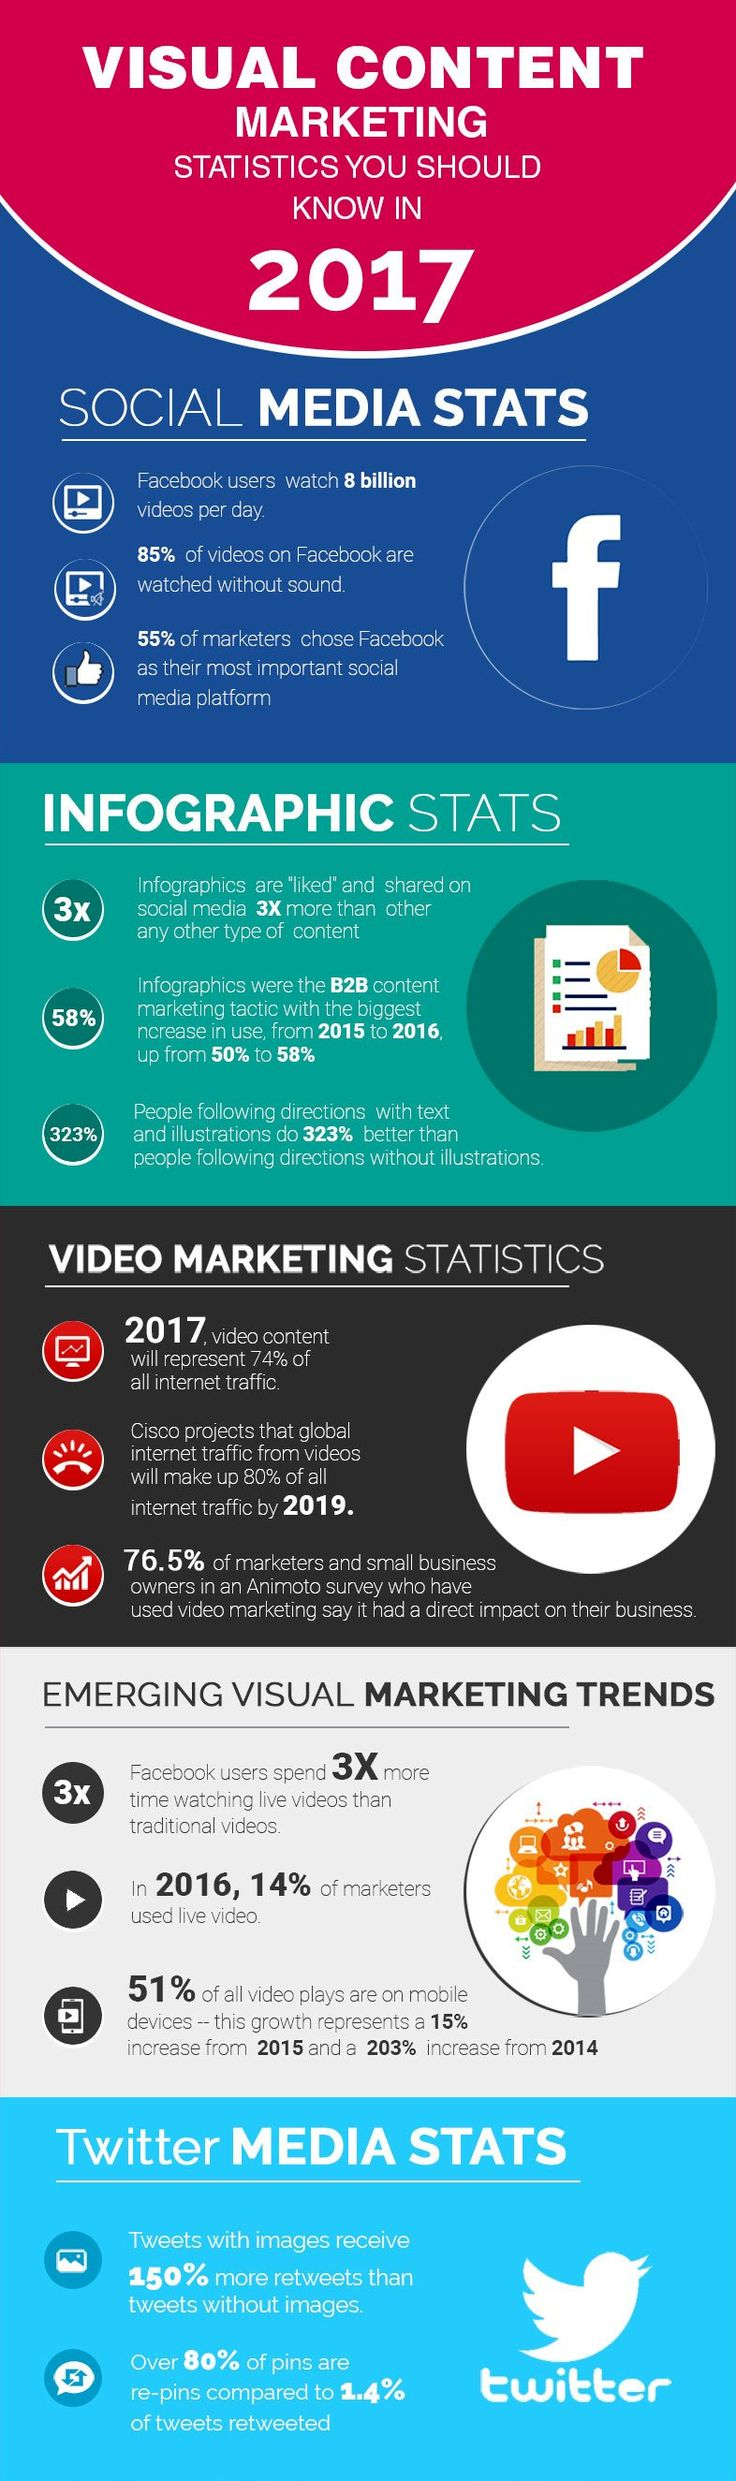 Visual Content Marketing - Statistics you should know in 2017   This #infographic goes through visual #SocialMedia and #ContentMarketing statistics you should know in 2017.   Some of the interesting statistics about visual content #marketing are following: 85% #Facebook videos are watched without sound. 55% Marketers consider Facebook their major marketing platform. 74% Internet traffic will be represented from videos content at the end of 2017. Landing pages with video lead to 800% more…